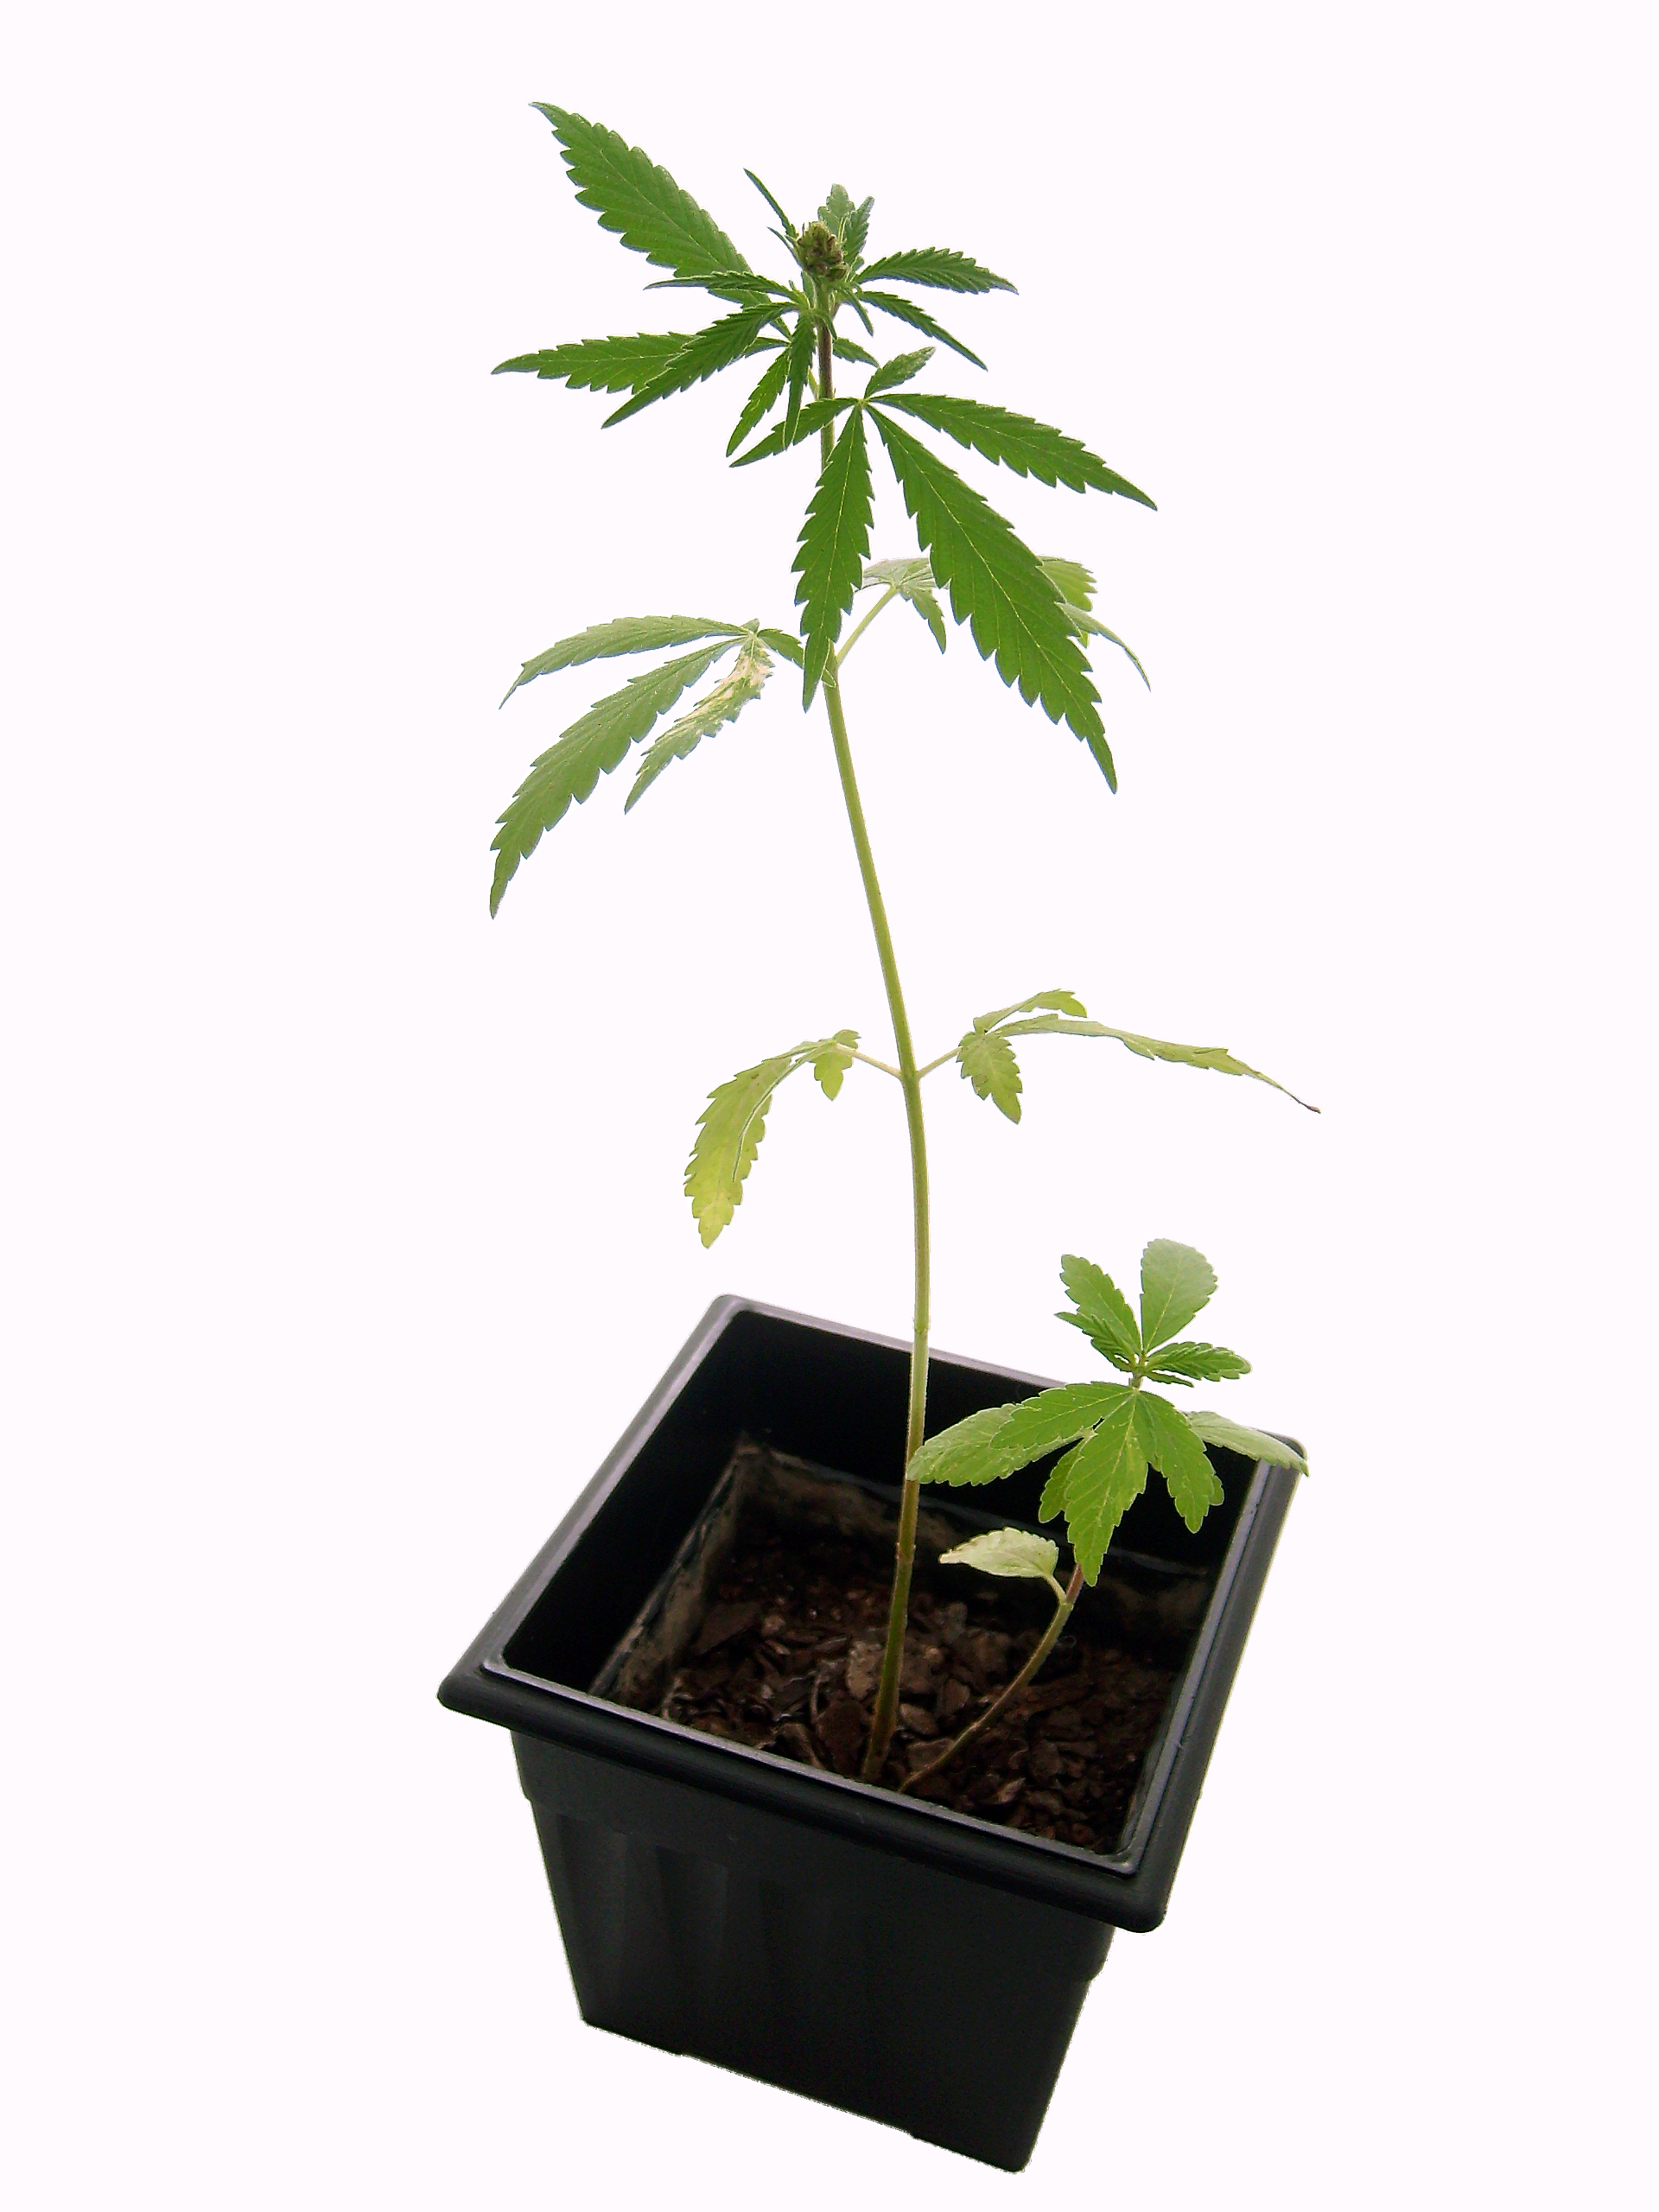 Drawn pot plant weed tree Are Plant Photo Telling Nodes